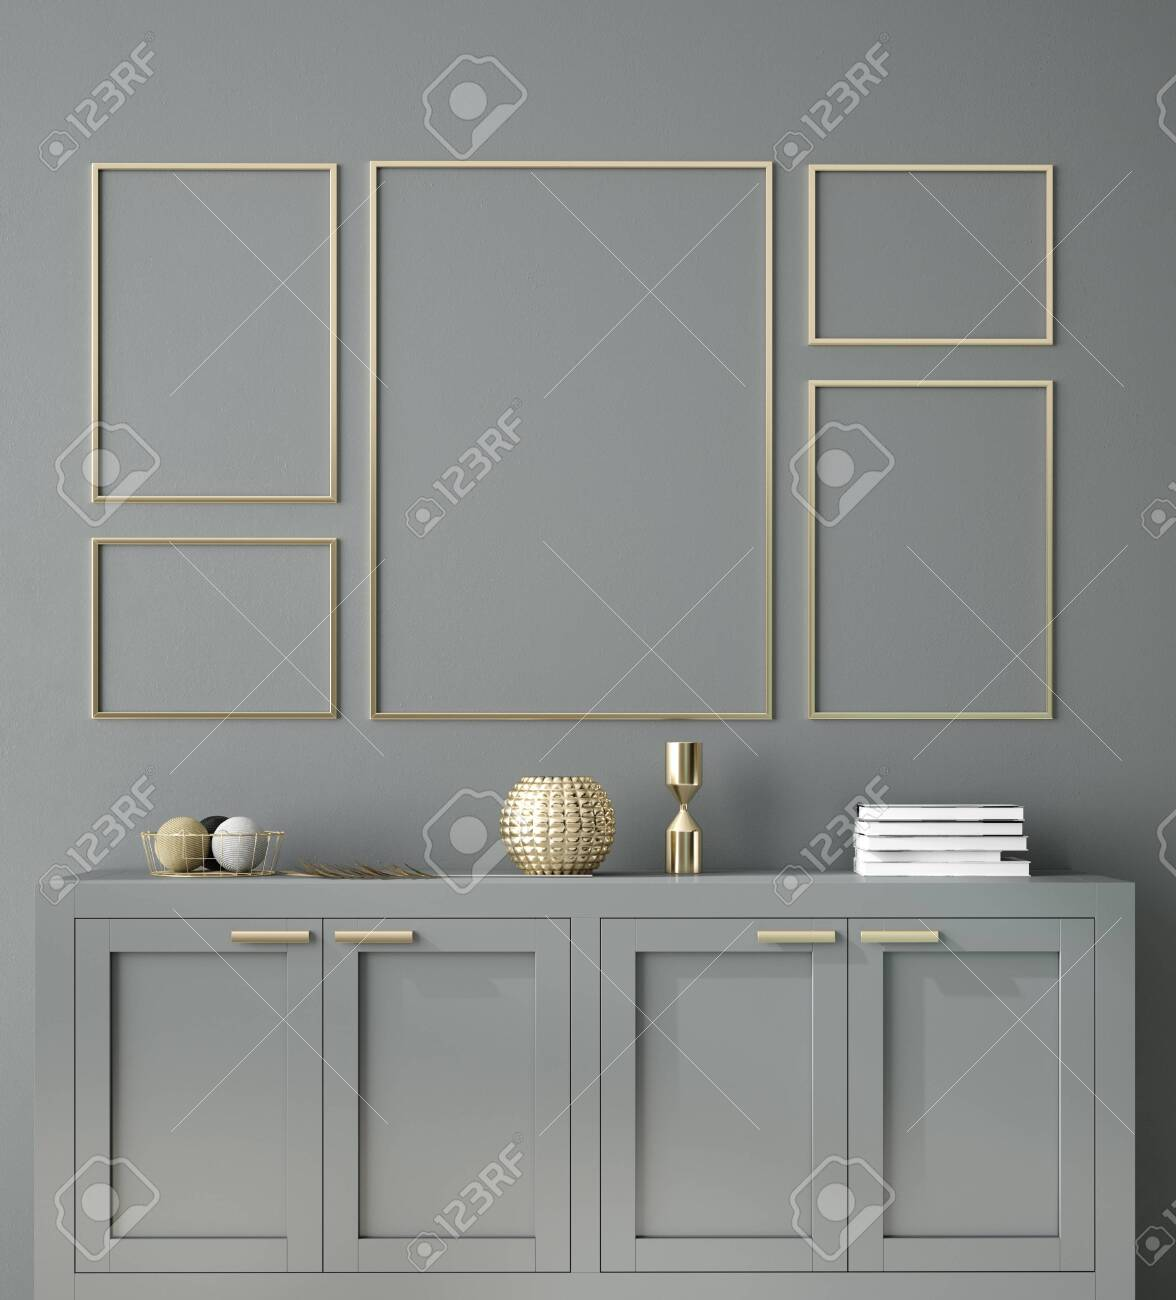 Poster, wall mockup with cabinet and decor in interior background, 3d rendering - 131973607